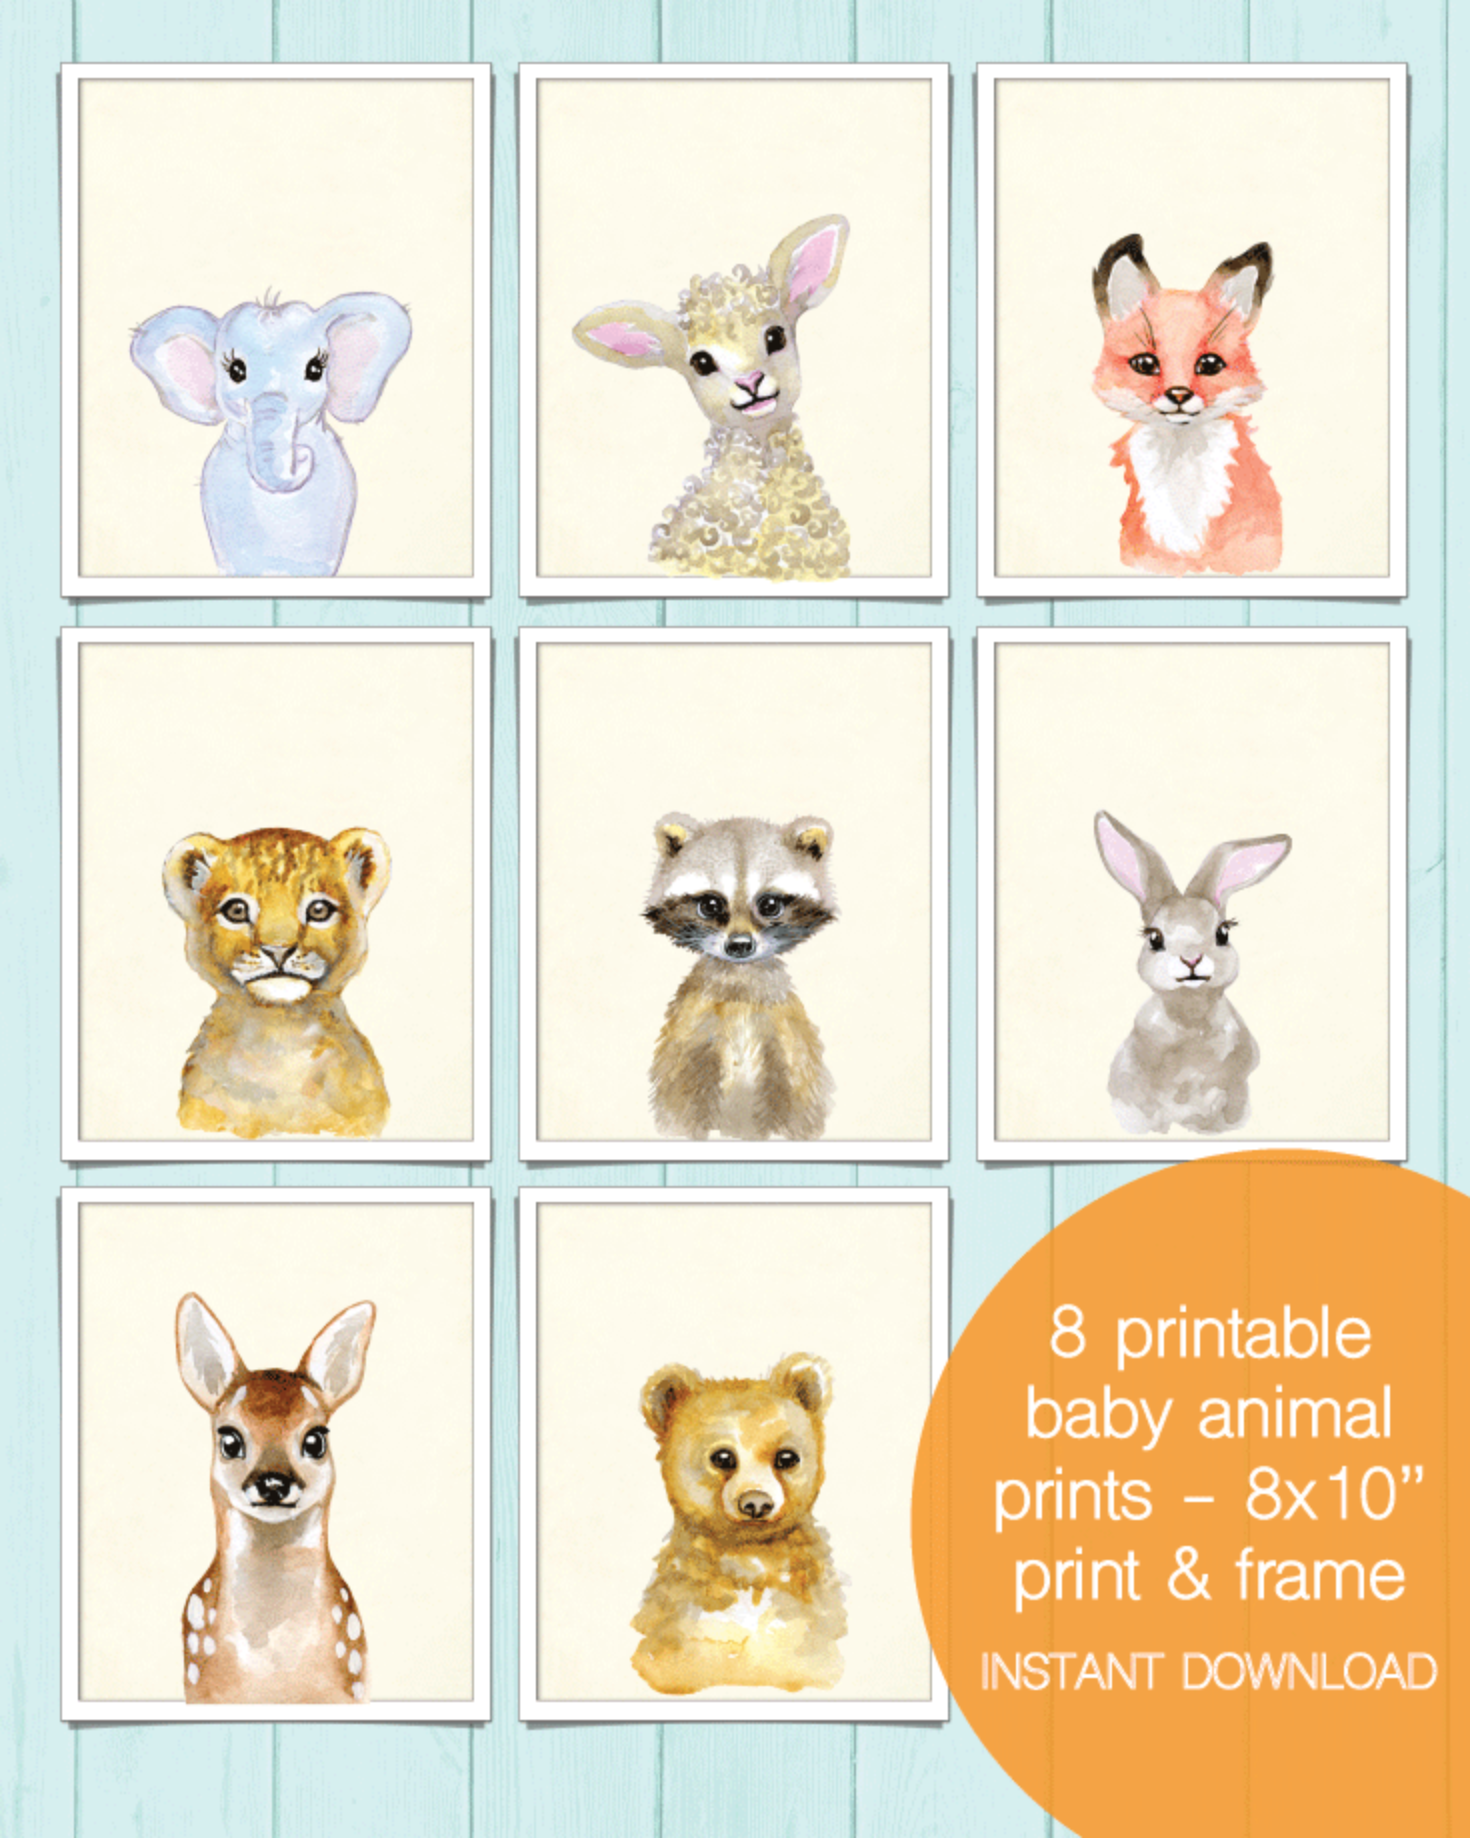 8 Printable Baby Animal Wall Art Pictures - 8x10